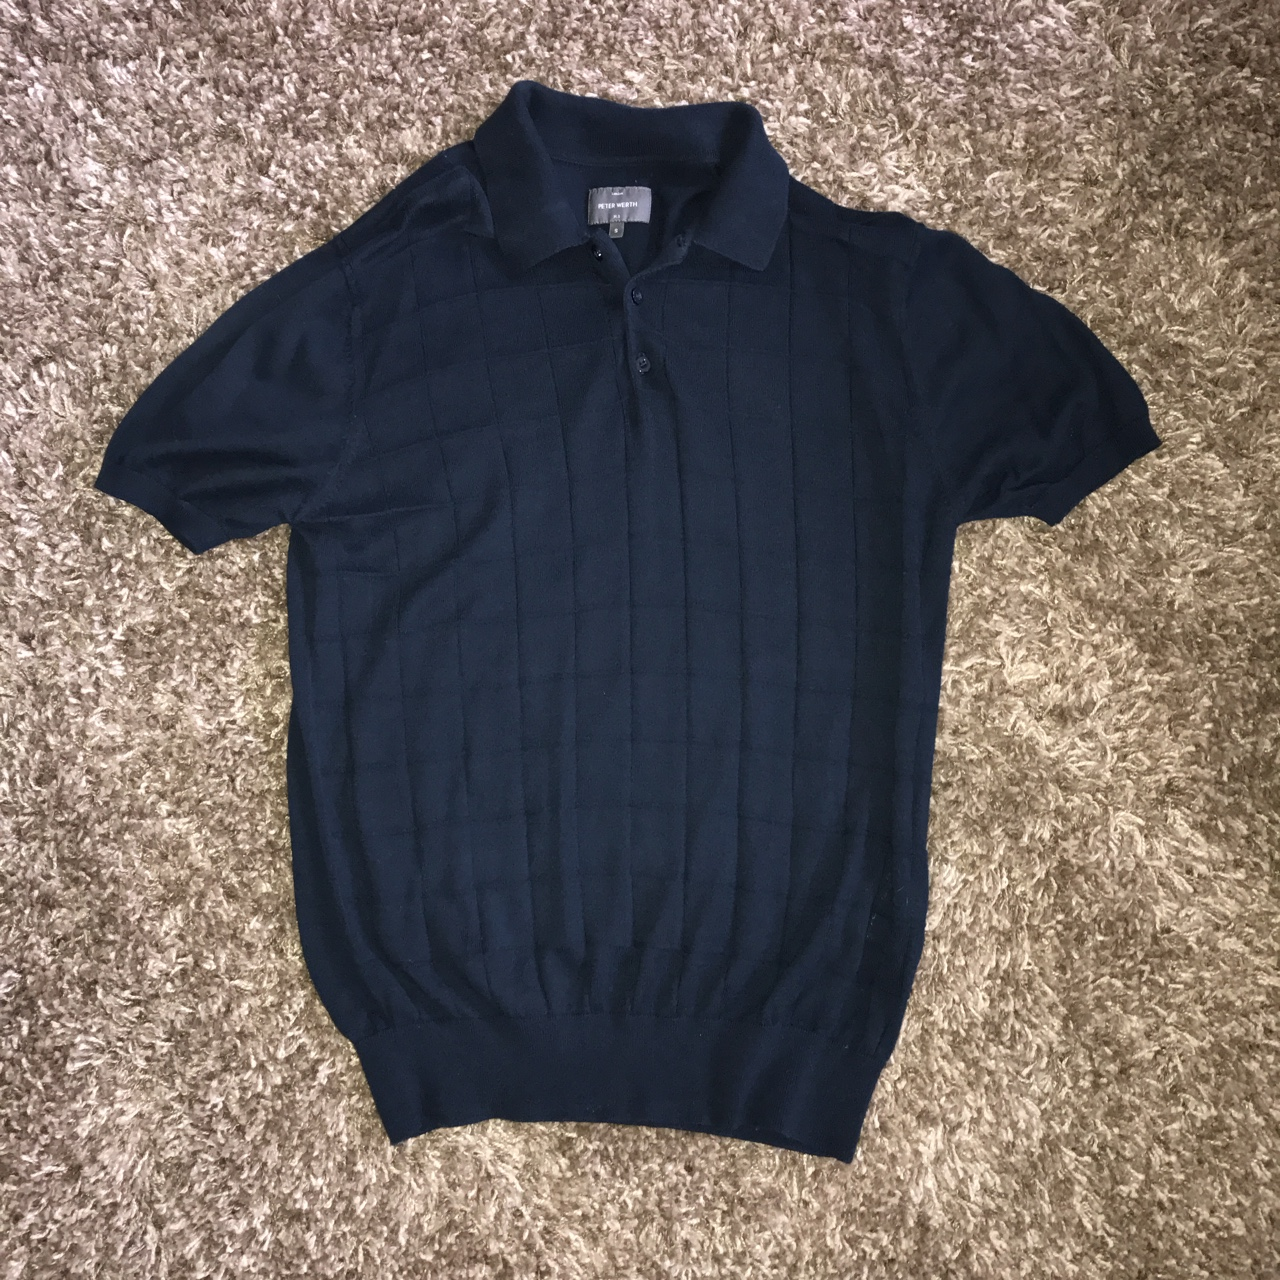 Knitted polo shirt from Peter Werth in navy, Small Depop